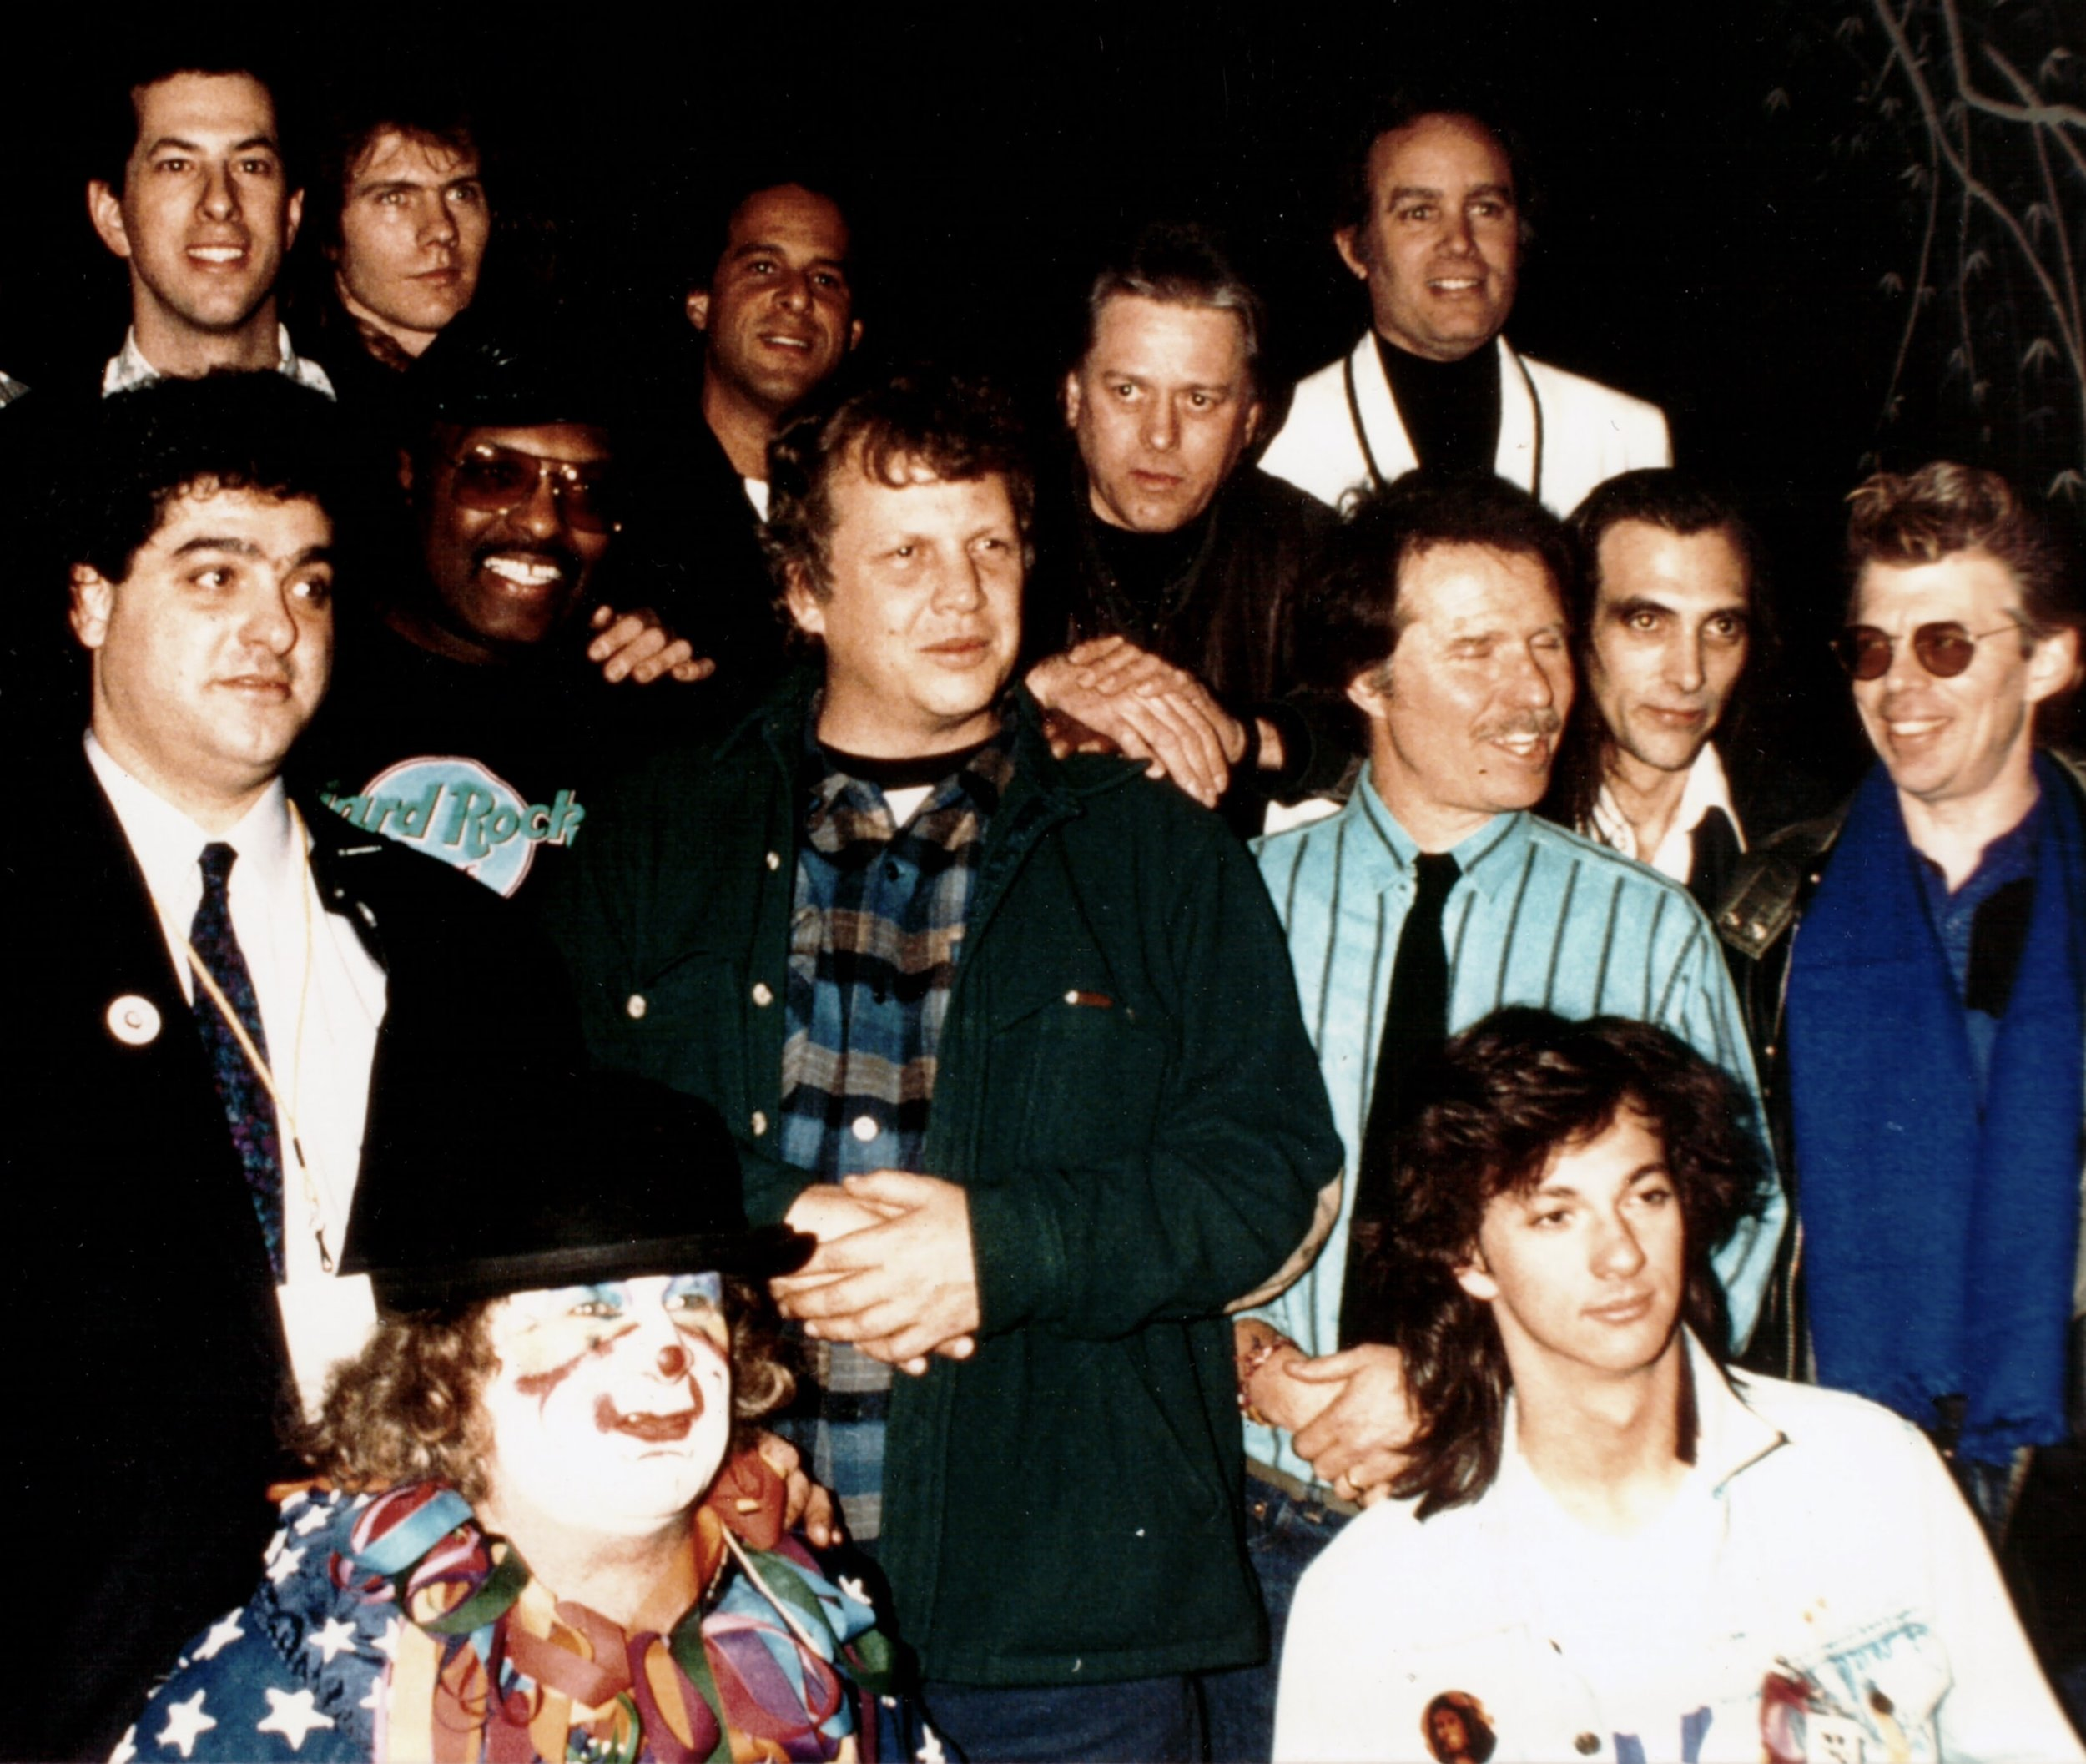 Larry Lieberman (top left) and Wavy Gravy (bottom left) with Steve Gold (middle left) Merl Saunders (Jerry Garcia Band). Peter Albin (Big Brother and the Holding Company), John Cipollina (Quicksilver Messenger Service), Spencer Dryden (Jefferson Airplane), Barry Melton and Country Joe McDonald (Country Joe and the Fish), Jack Casady (Jefferson Airplane, Hot Tuna), Brian Bloch, and others. [Psychedelic Daze Revue, 1987]